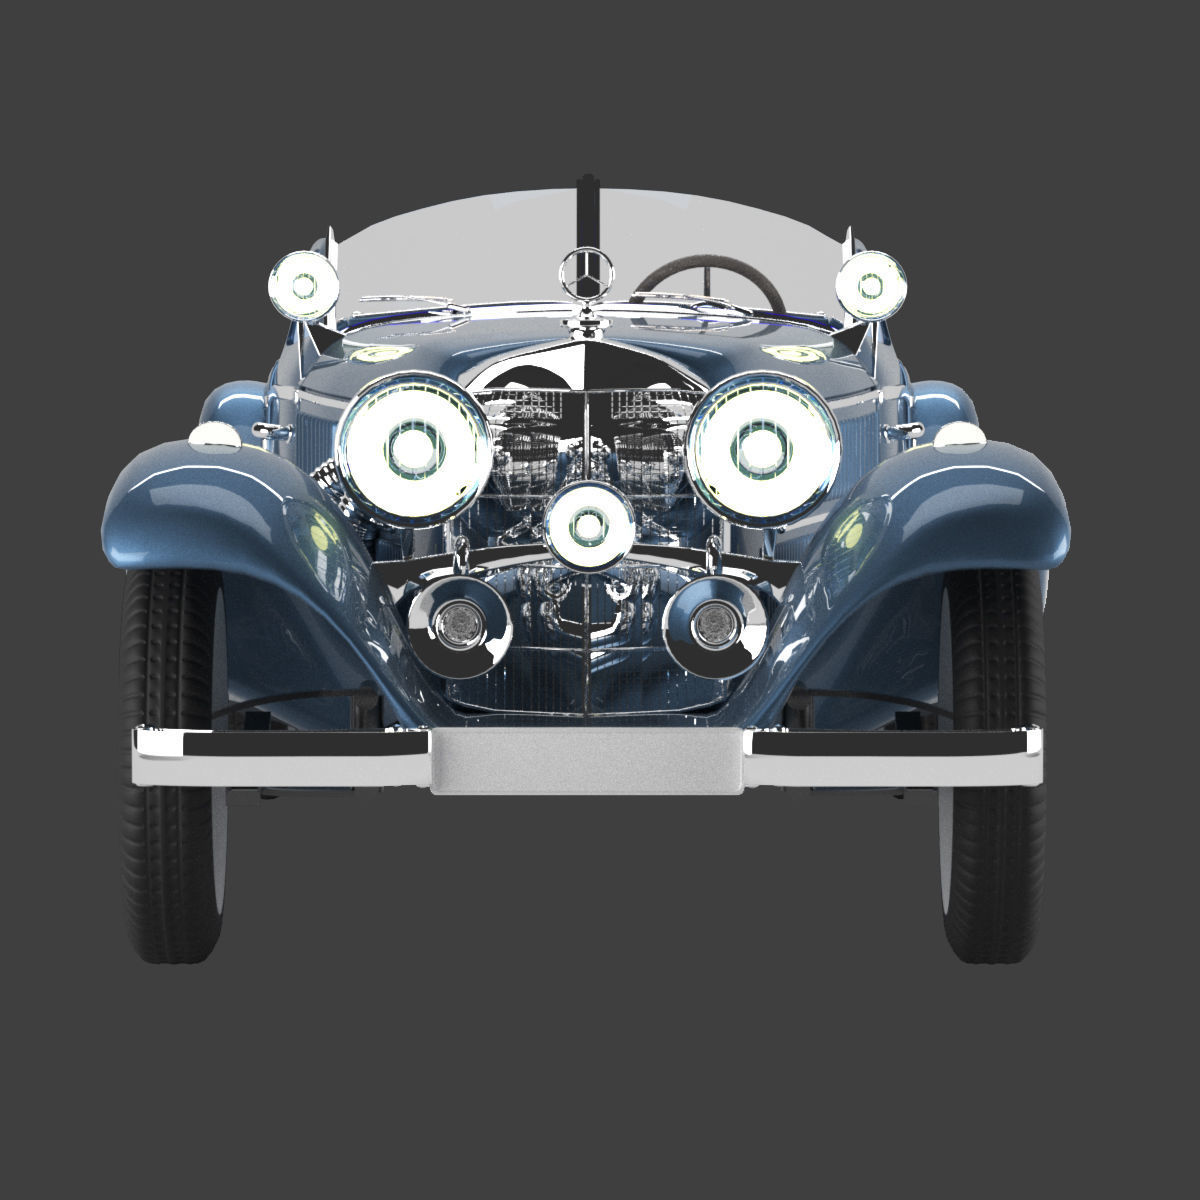 Mercedes 1938 540k blueprint with open top